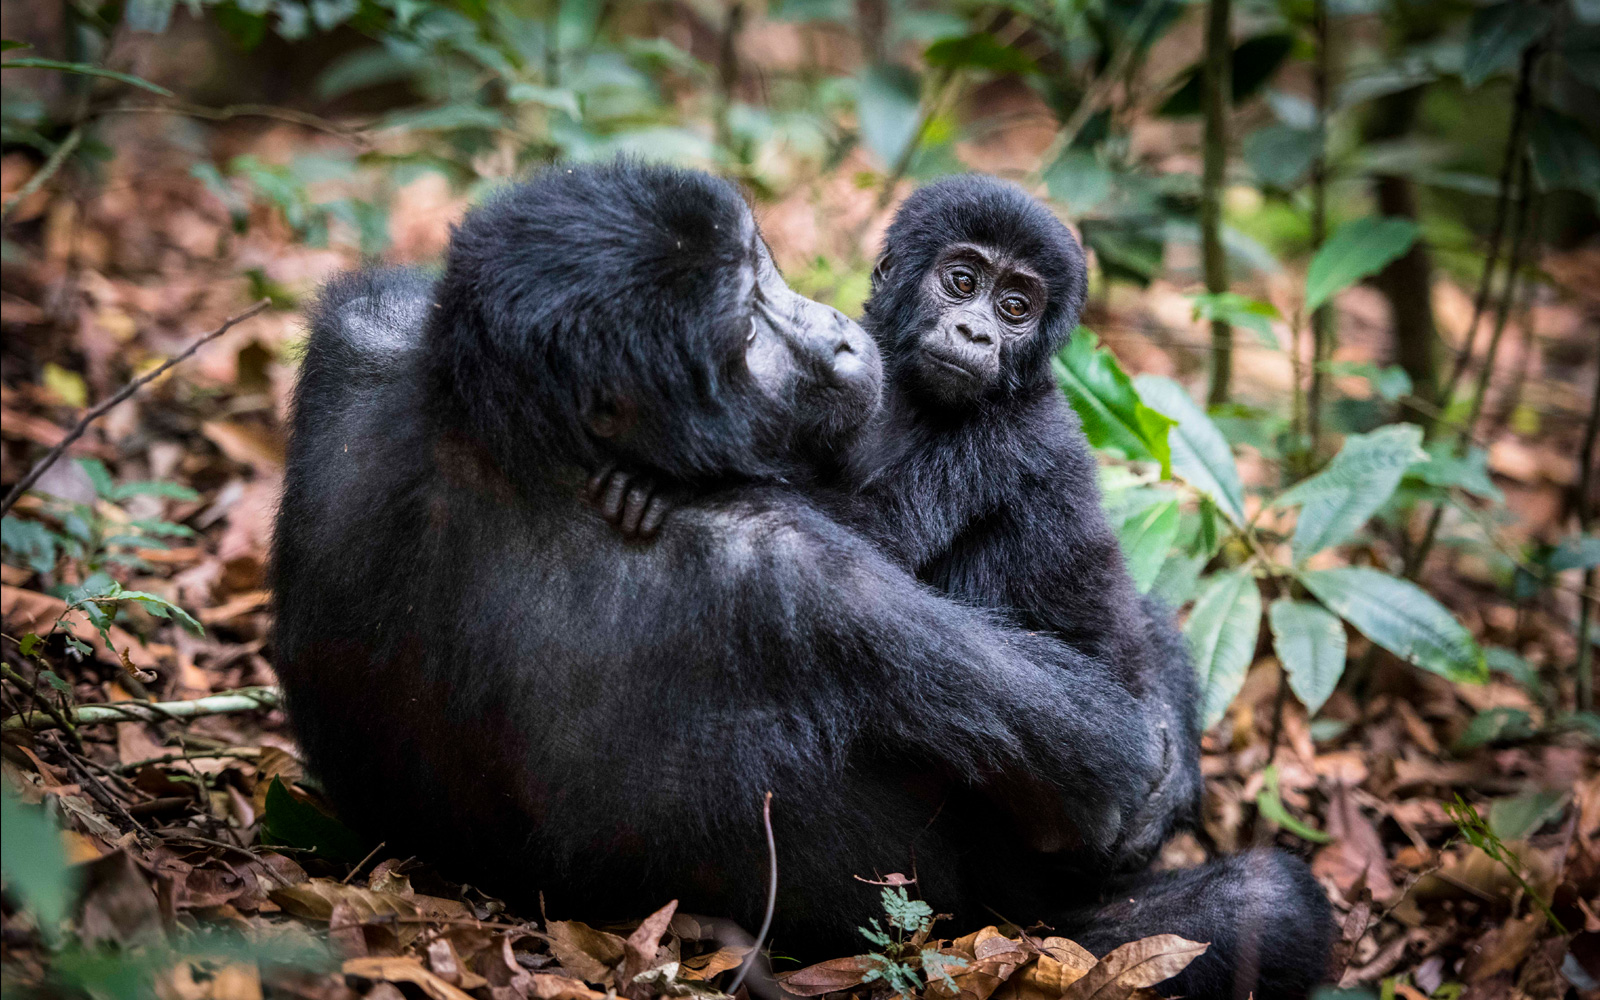 A gorilla and her young in Bwindi Impenetrable National Park, Uganda © Andrea Galli